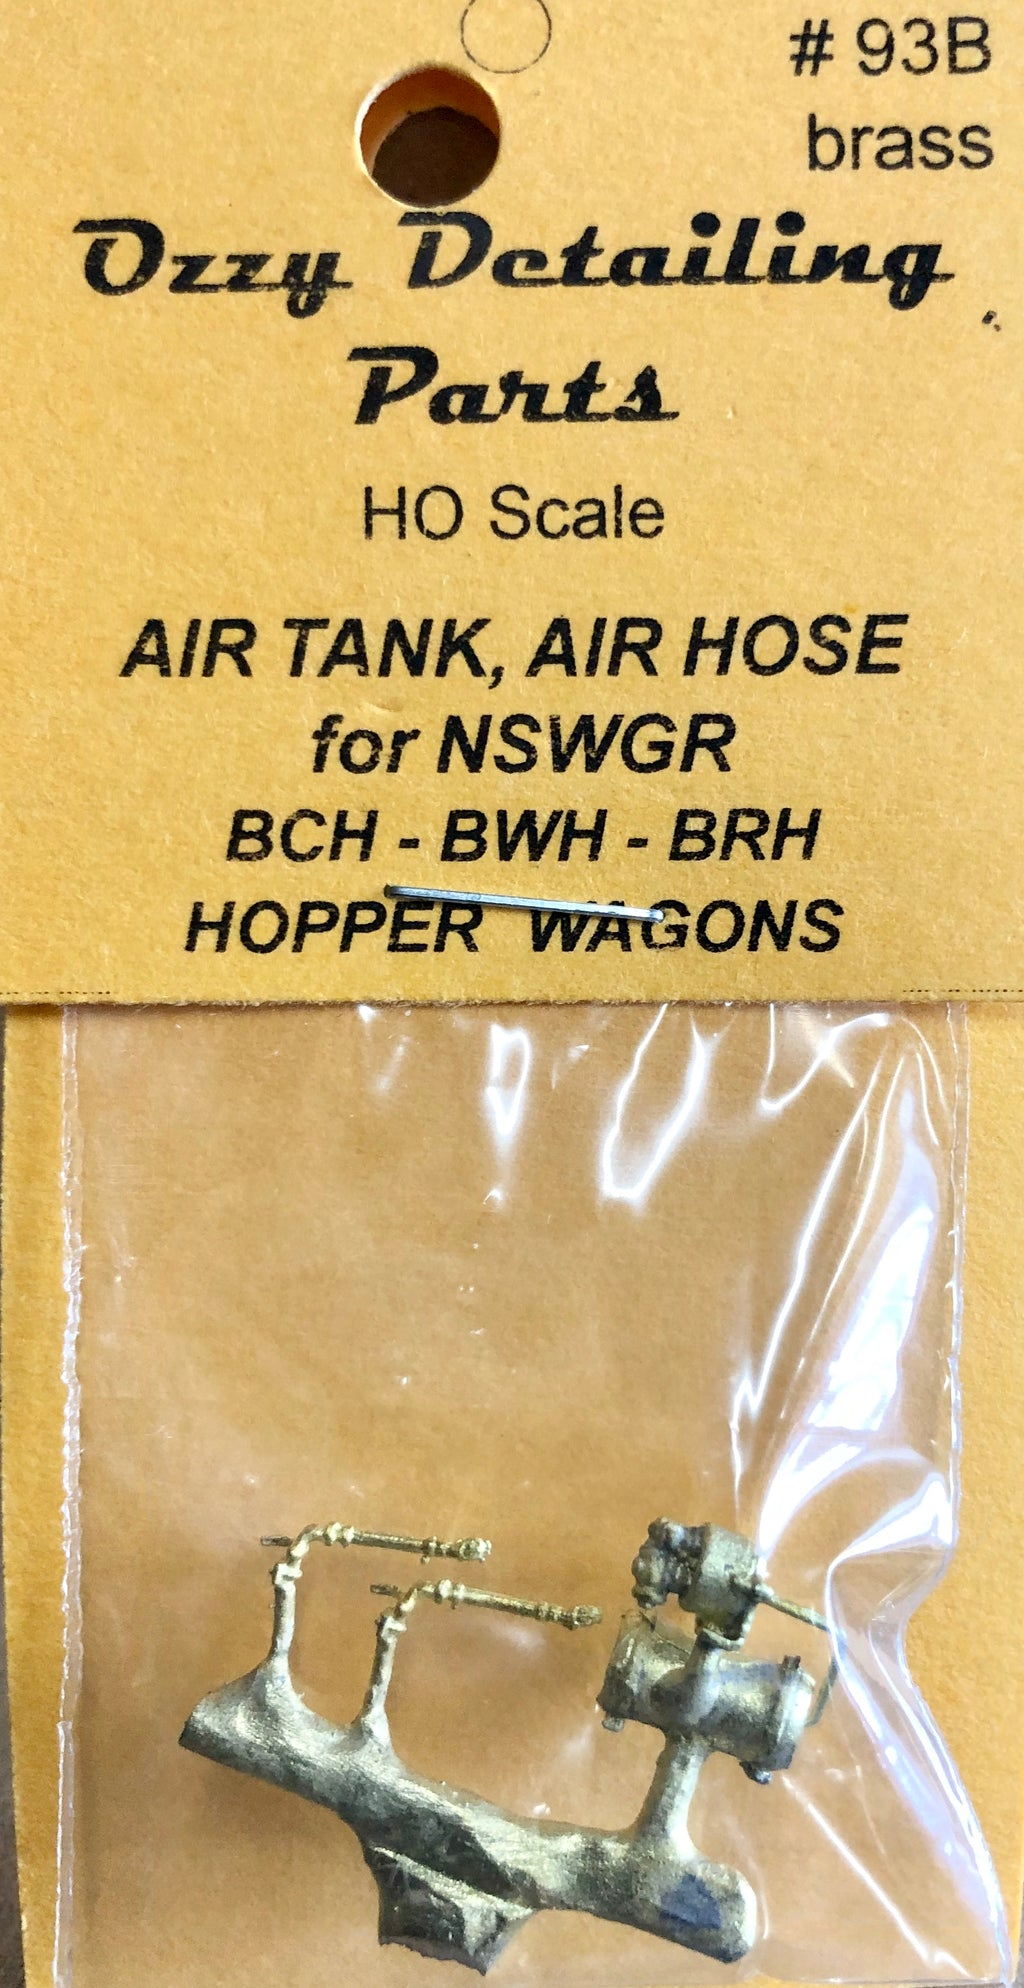 BCH 93B - AIR TANK & AIR HOSES for BCH & goods wagon NSWGR - Ozzy Brass #93B